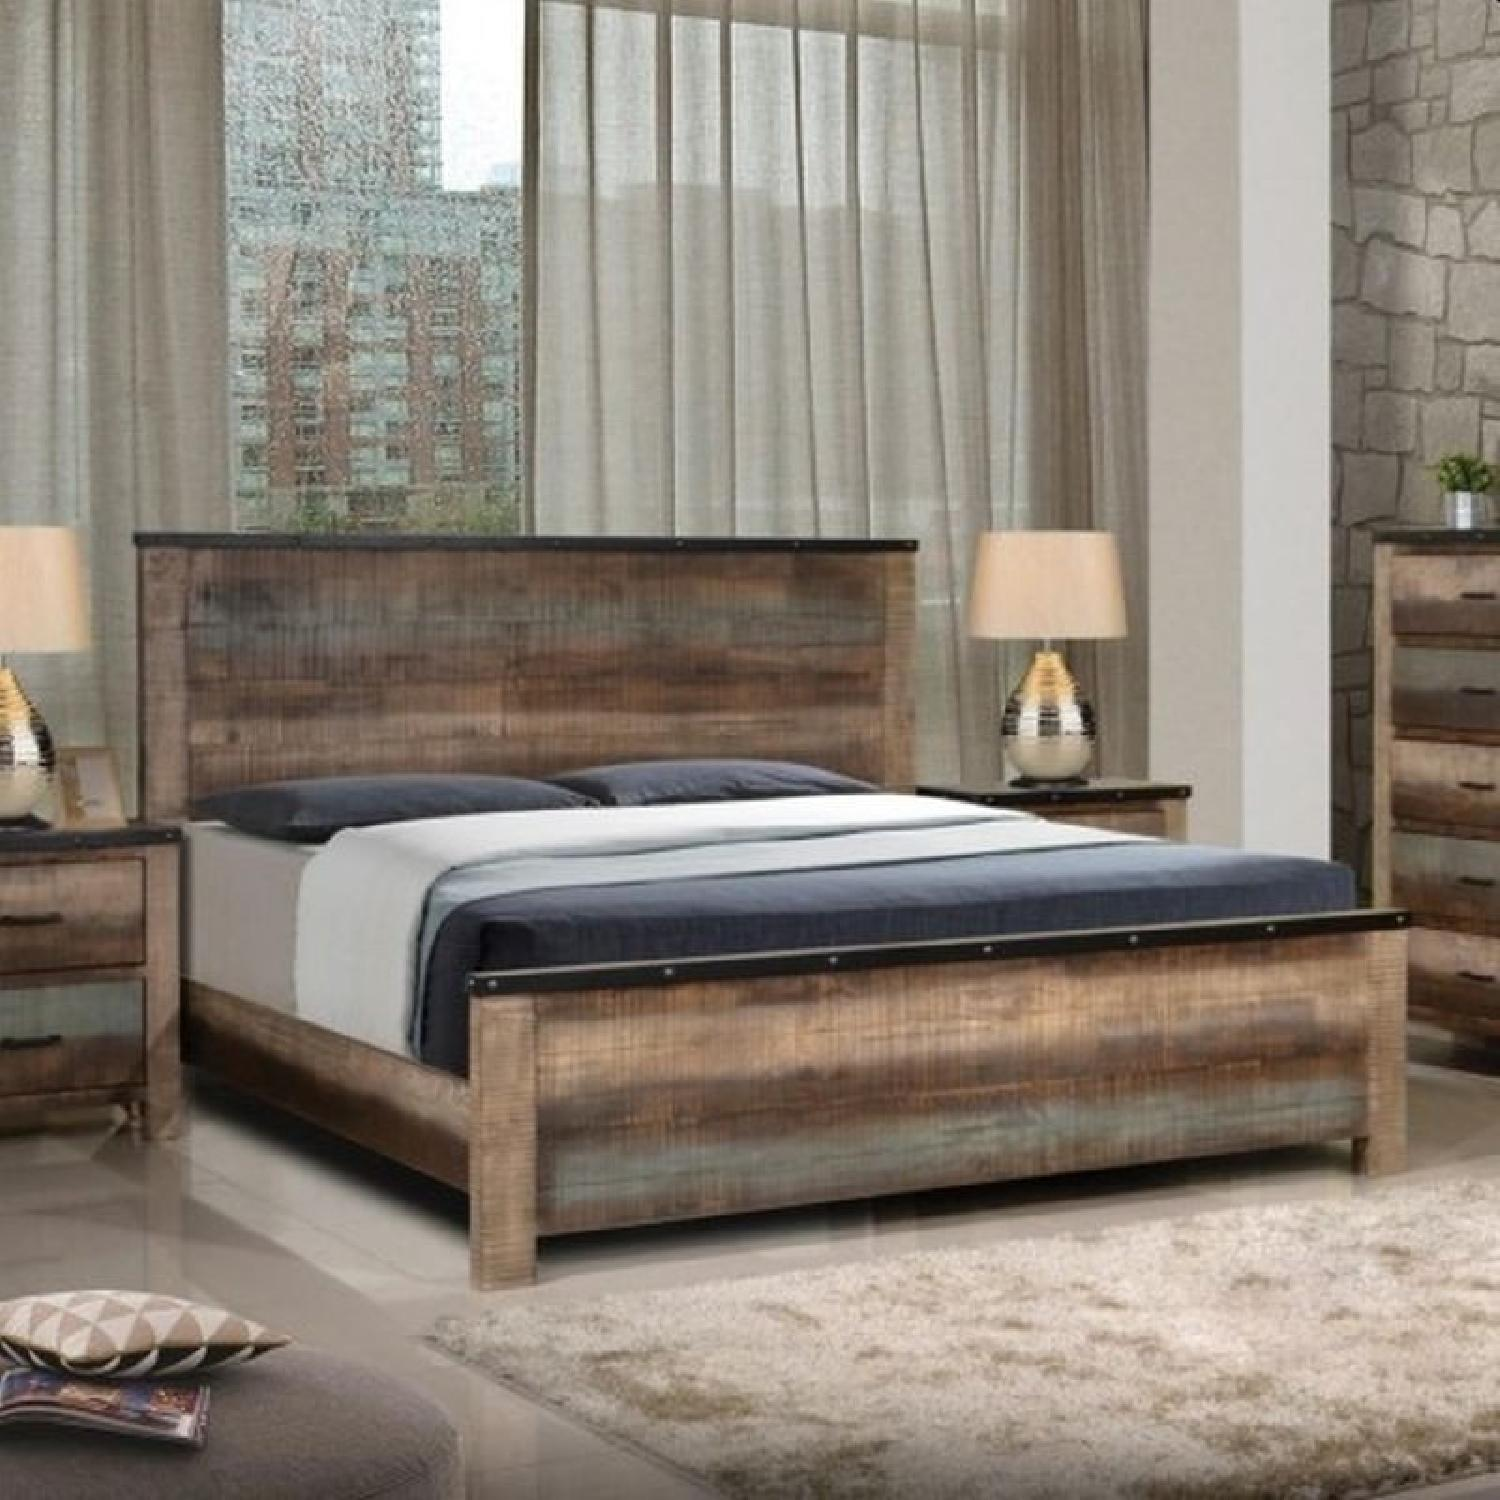 Rustic Style Queen Size Bed in Solid Wood Multi-Tonal Finish - image-1